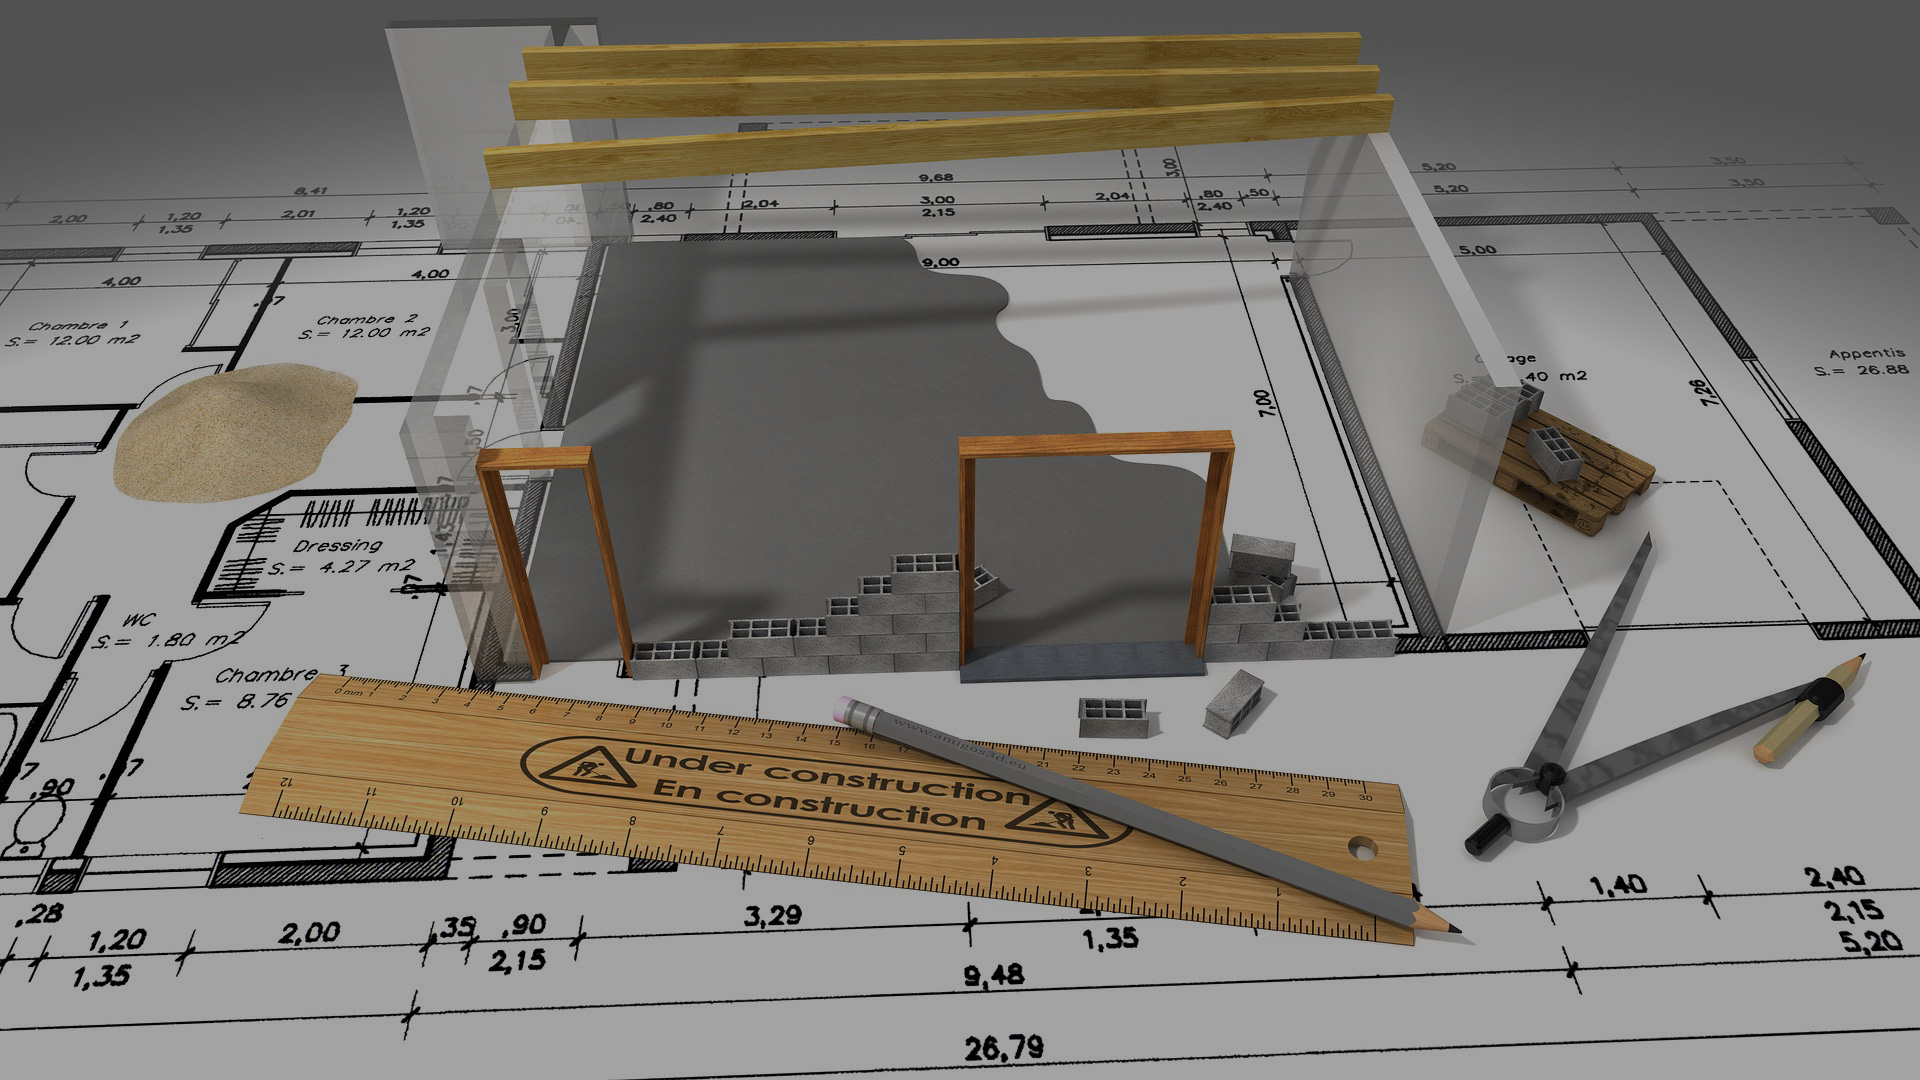 kefalonia_constructions_services3